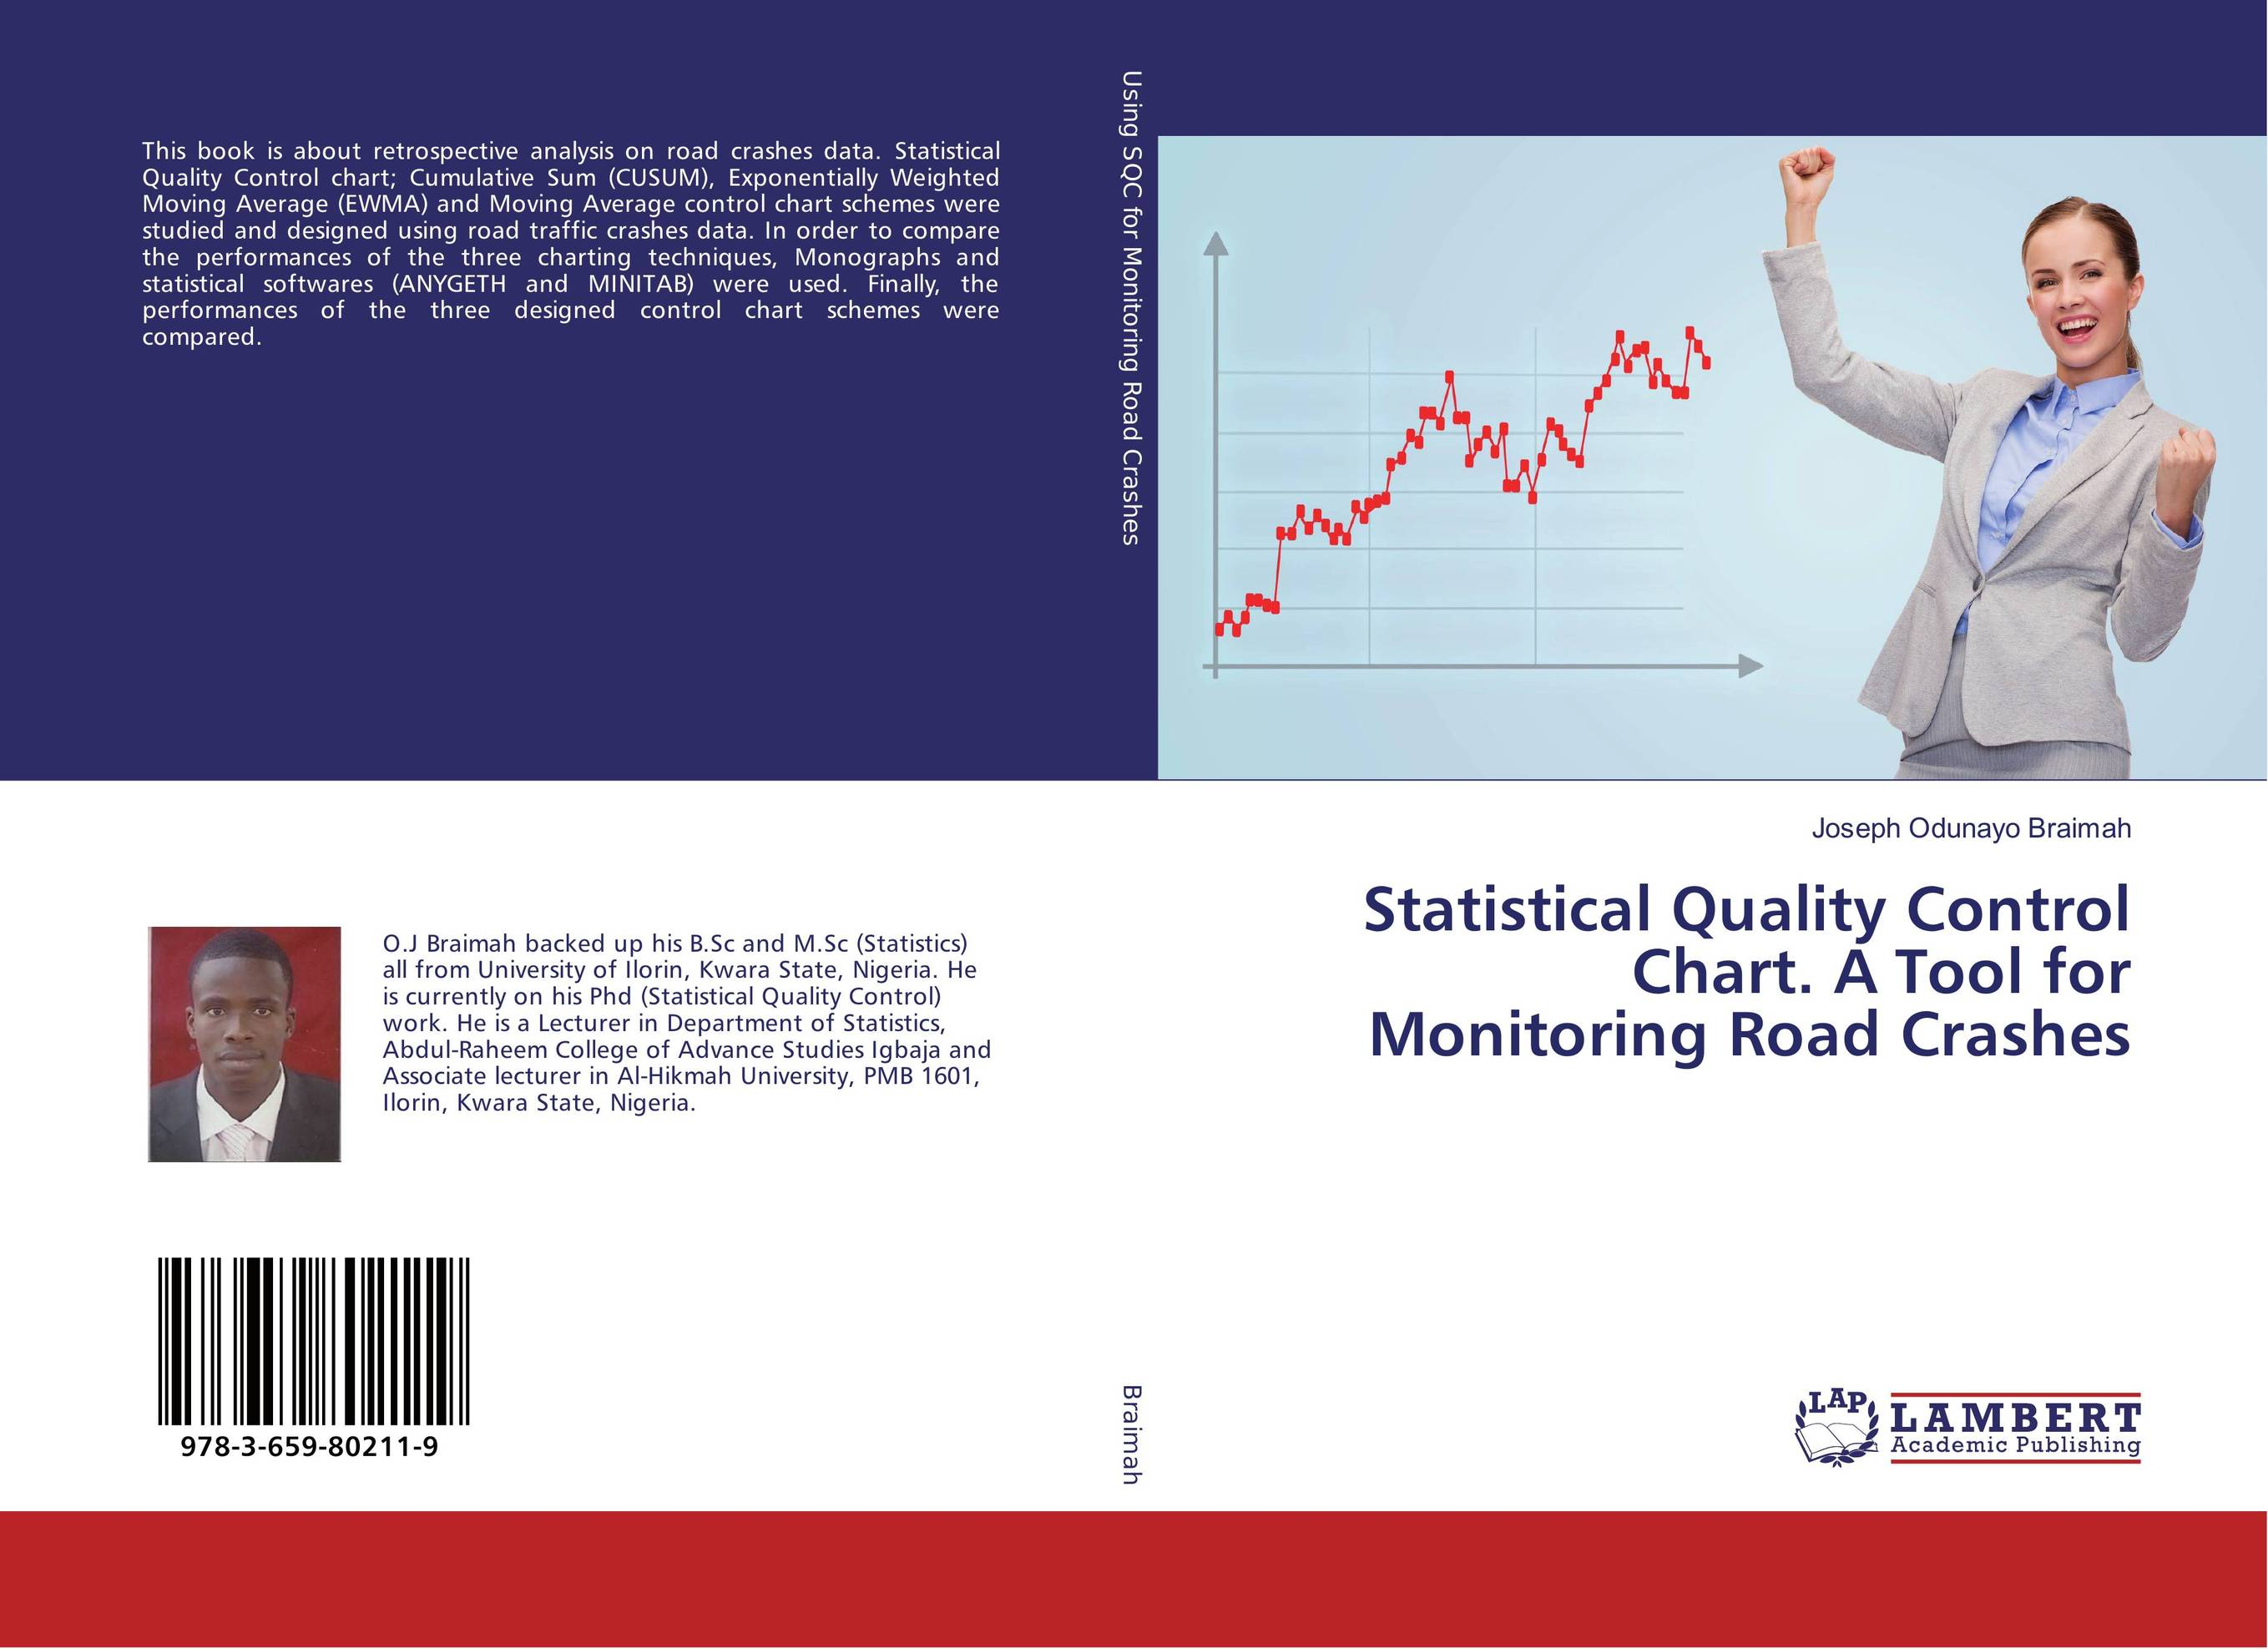 Statistical Quality Control Chart. A Tool for Monitoring Road Crashes exponentially weighted moving average control chart